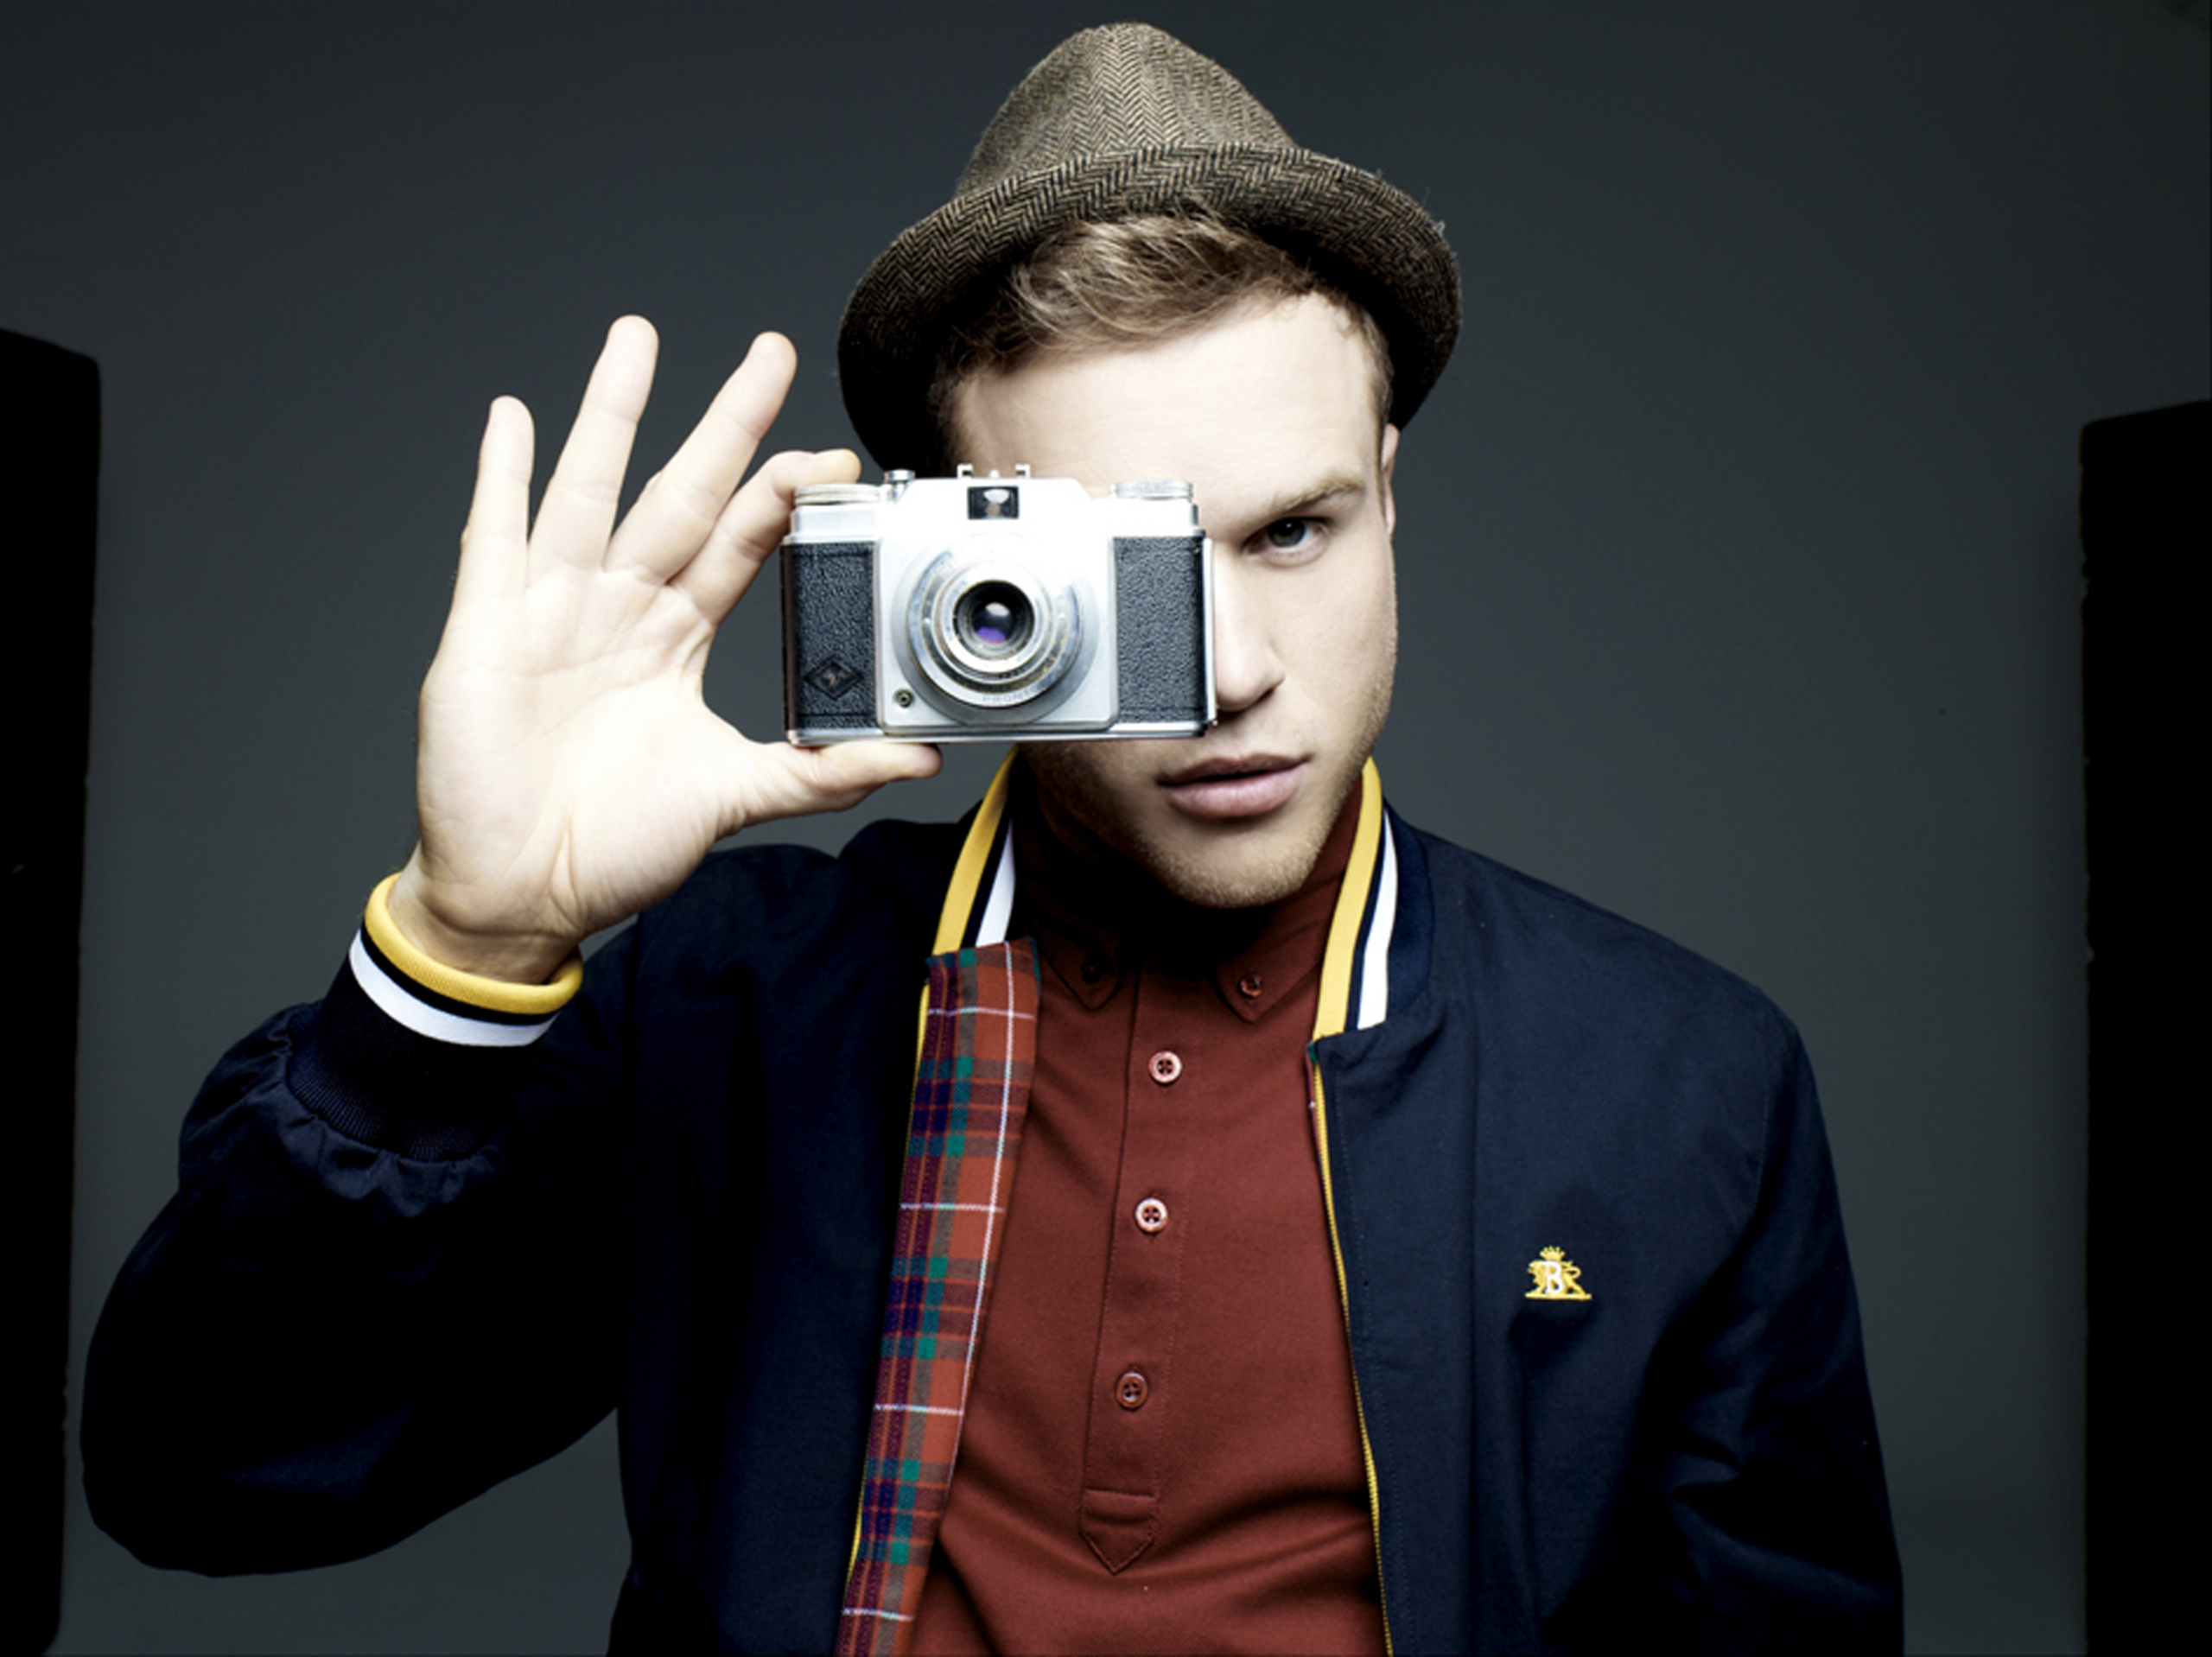 Olly Murs Photo 17621119 Fanpop Fanclubs Picture to Pin on